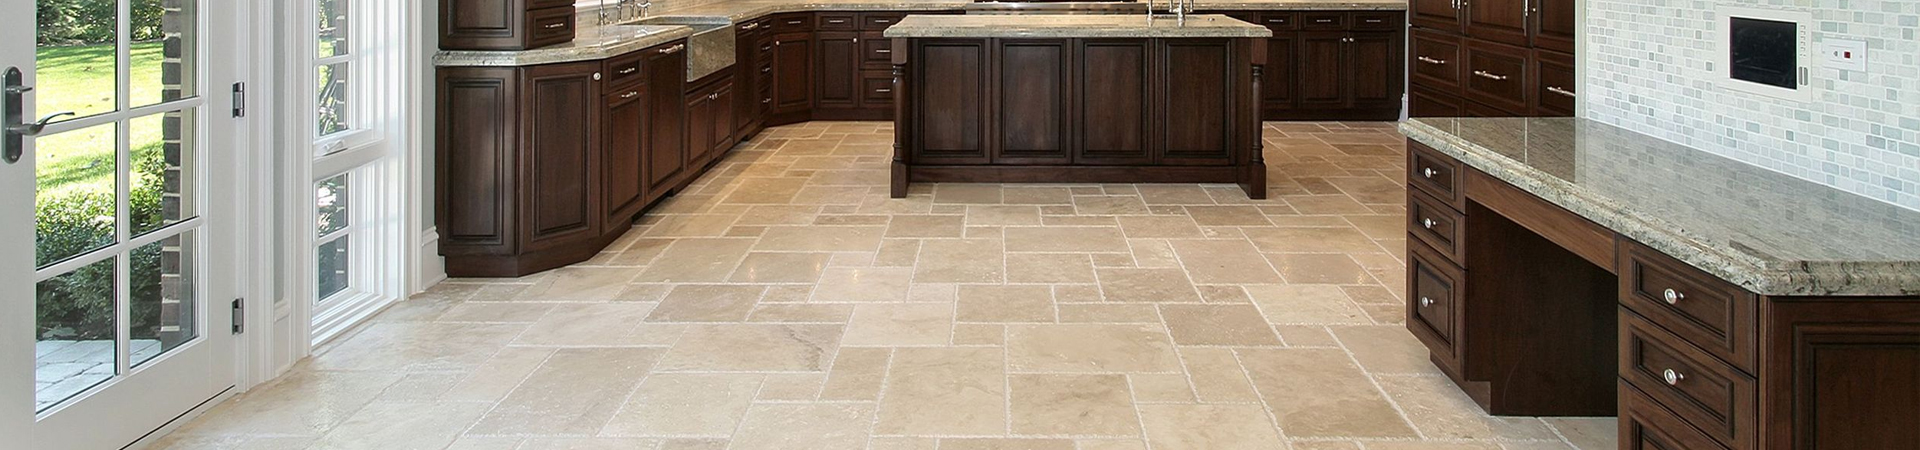 Tile grout cleaning crystal carpet cleaning package special schedule to have your carpet and tile cleaned at the same time and receive 10 off your total bill baanklon Choice Image